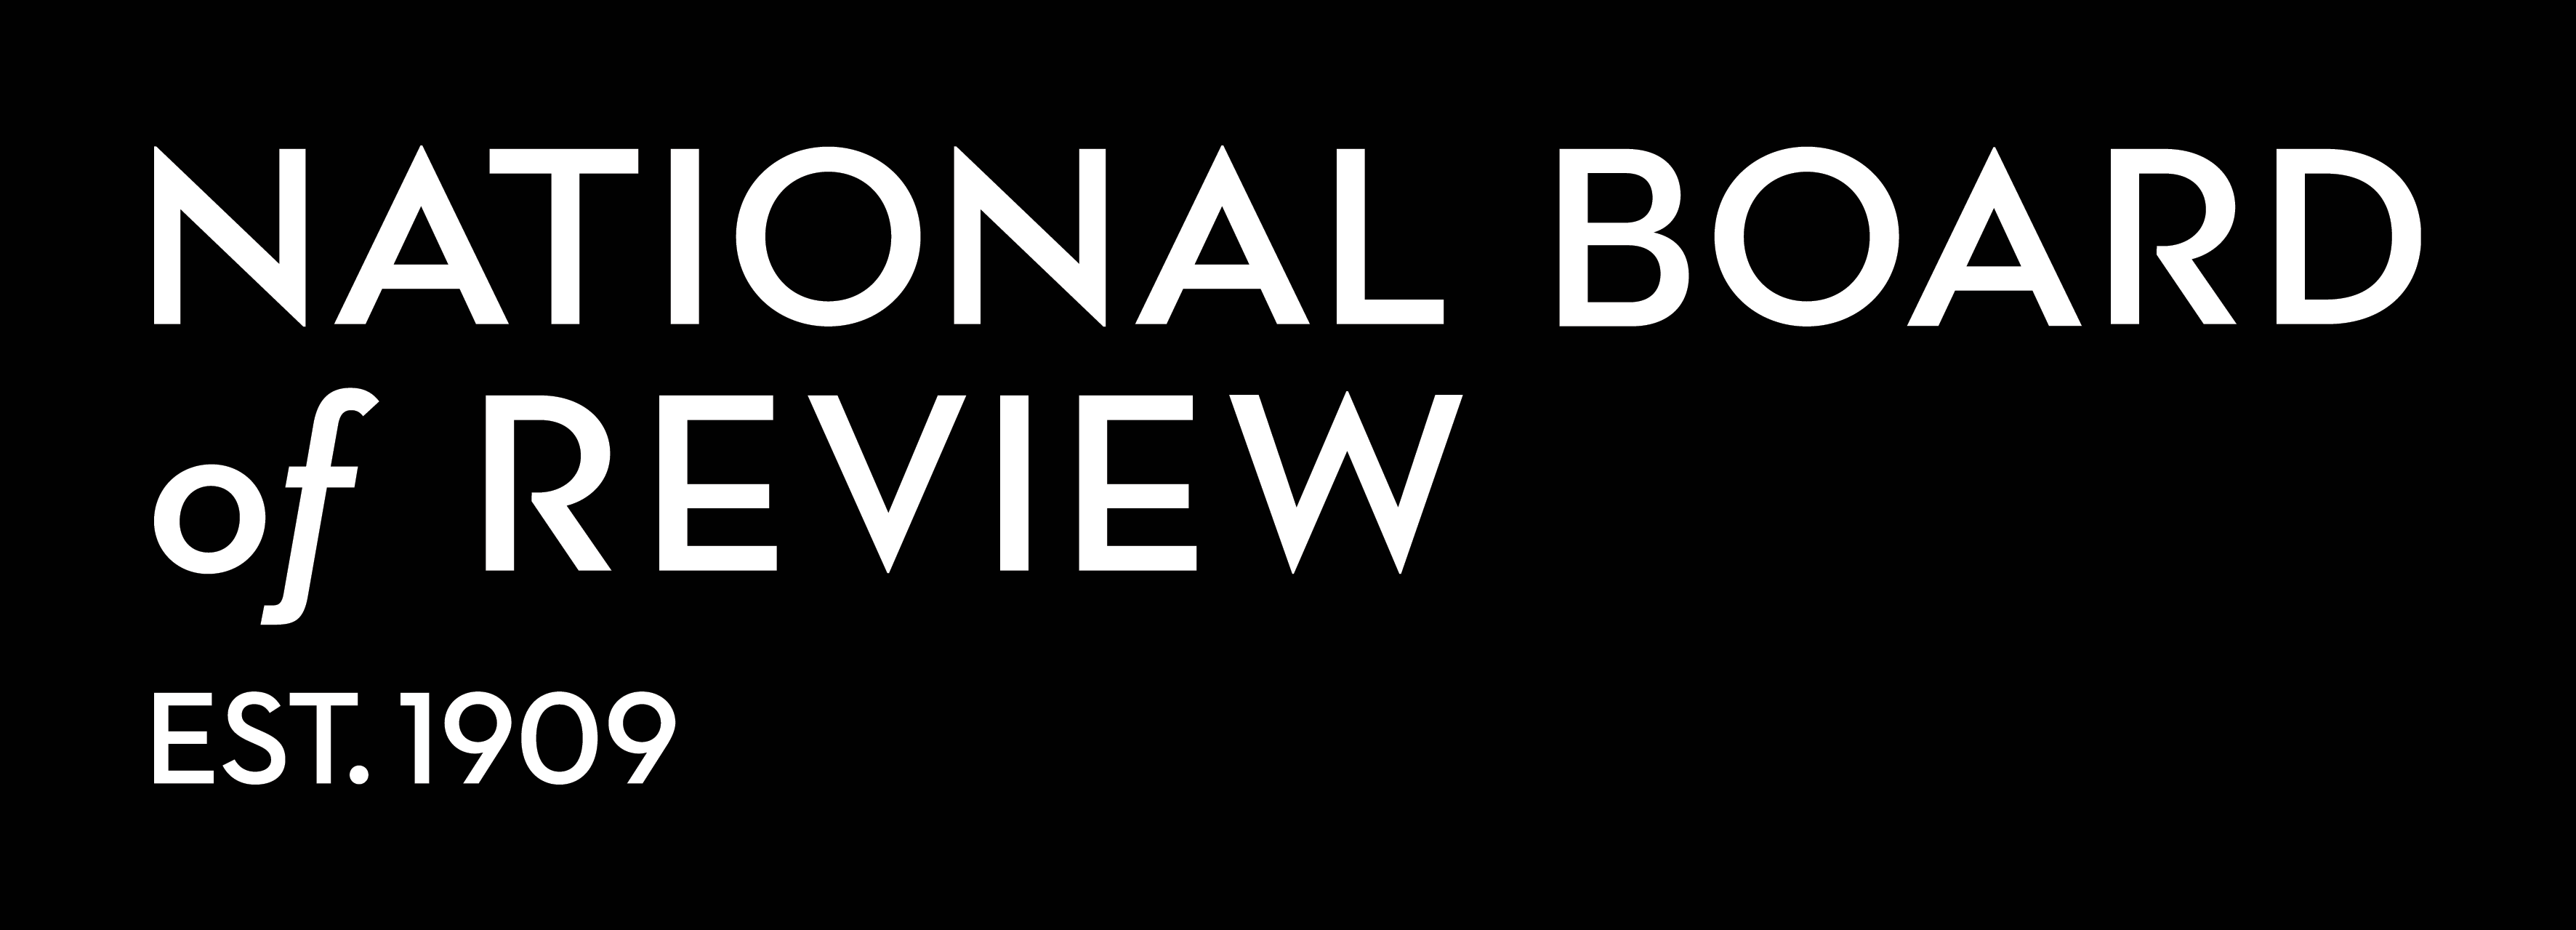 National Board Png - File:The National Board of Review Logo.png - Wikipedia